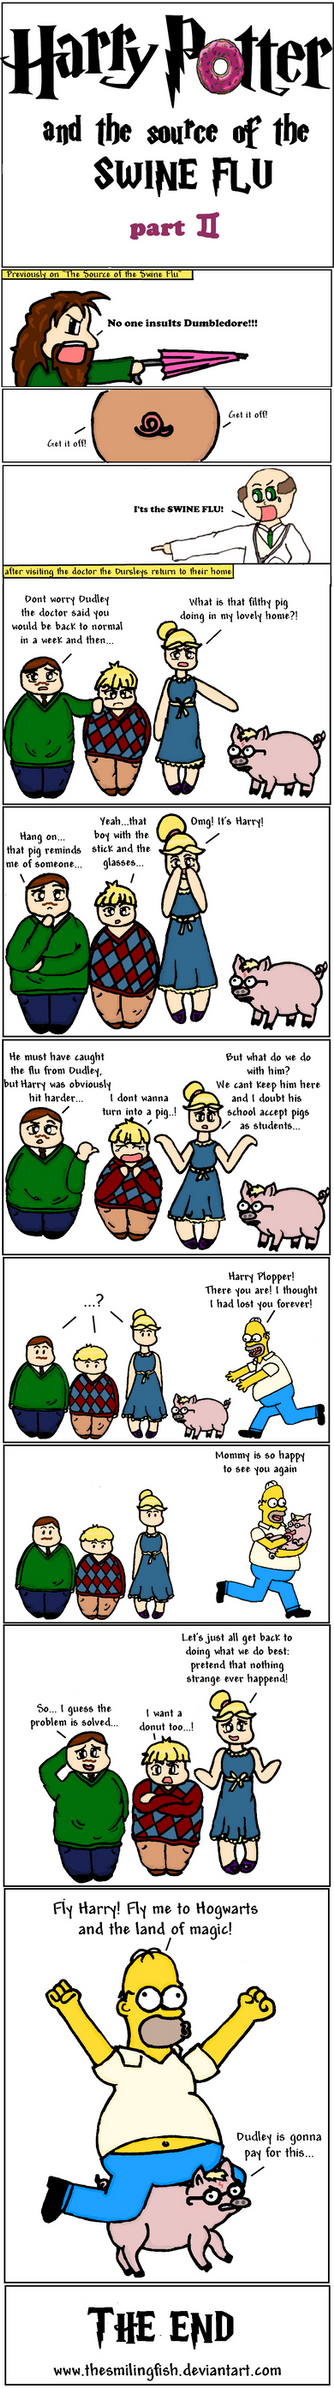 Harry Potter and the swine flu by TheSmilingFish